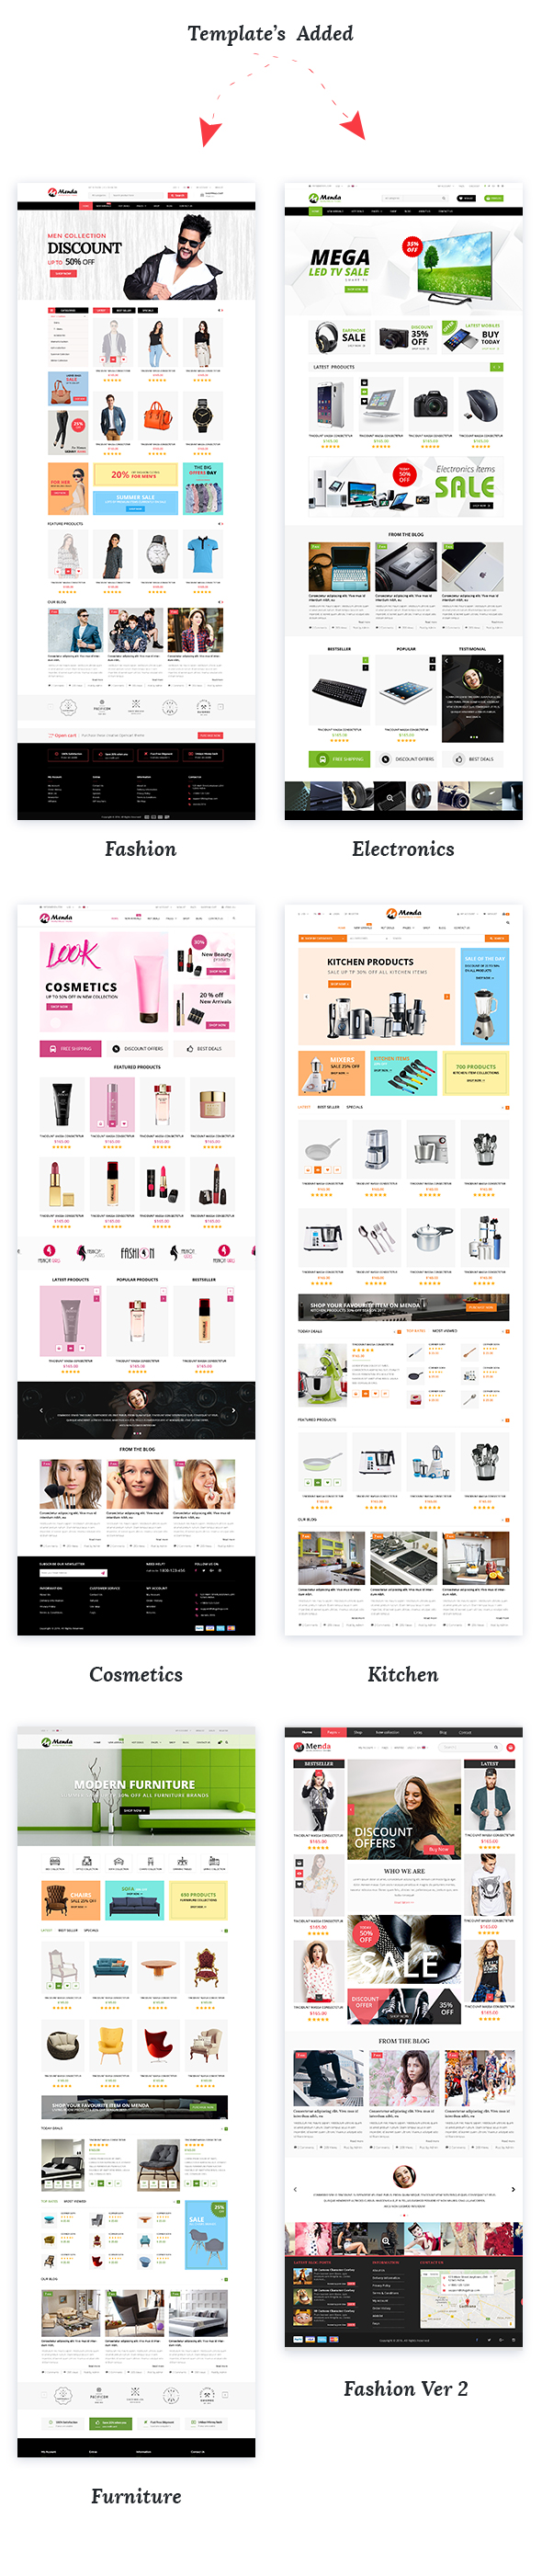 Menda - Ecommerce WordPress Themes - 4